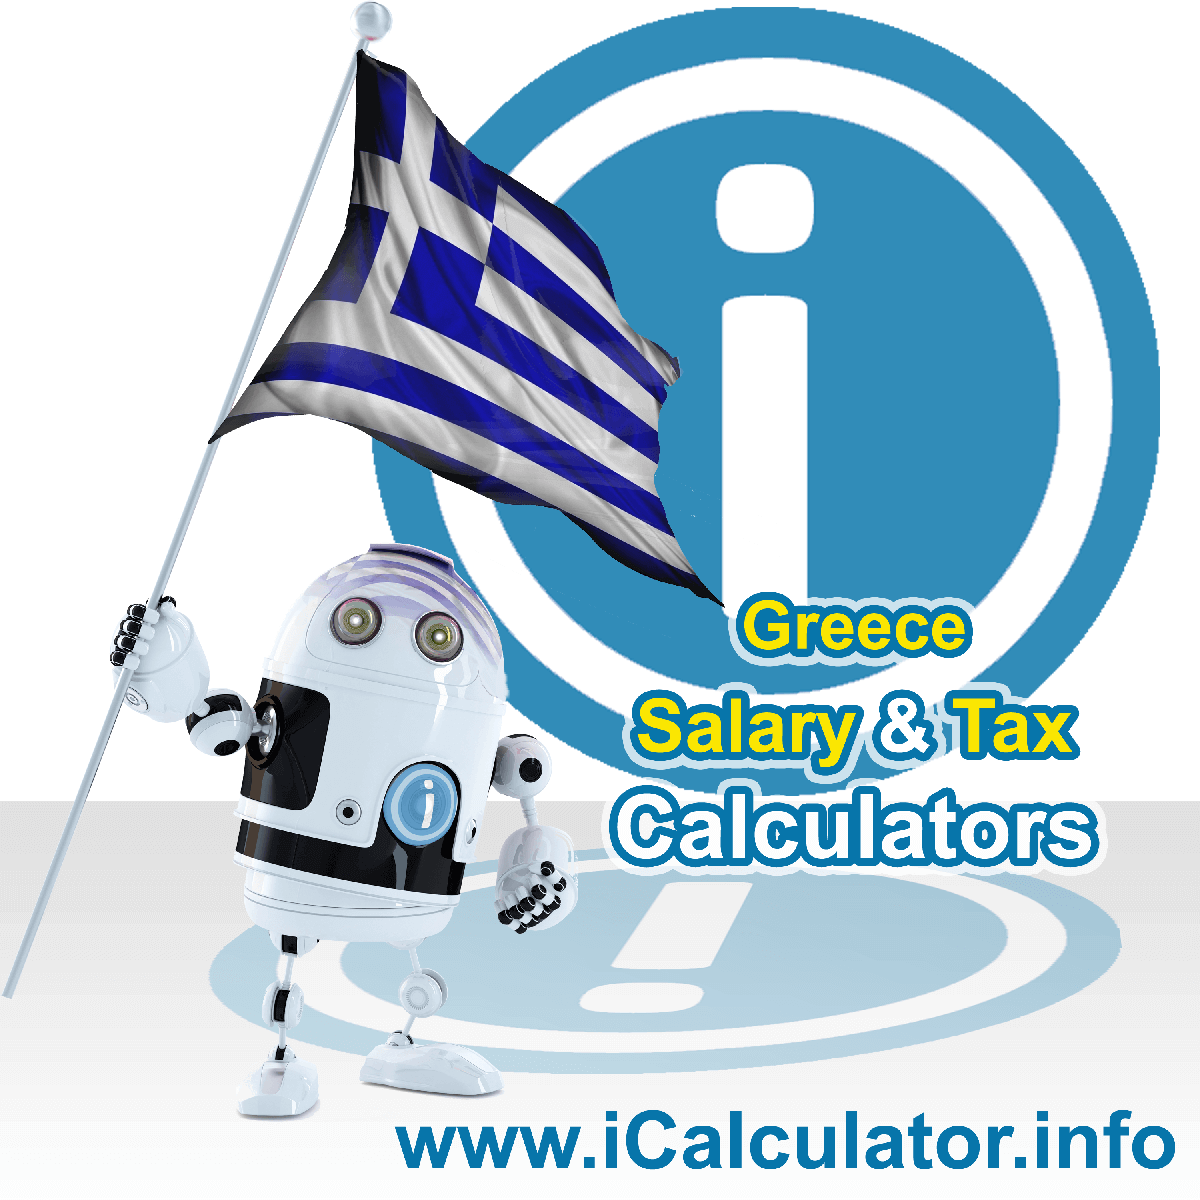 Greece Tax Calculator. This image shows the Greece flag and information relating to the tax formula for the Greece Salary Calculator